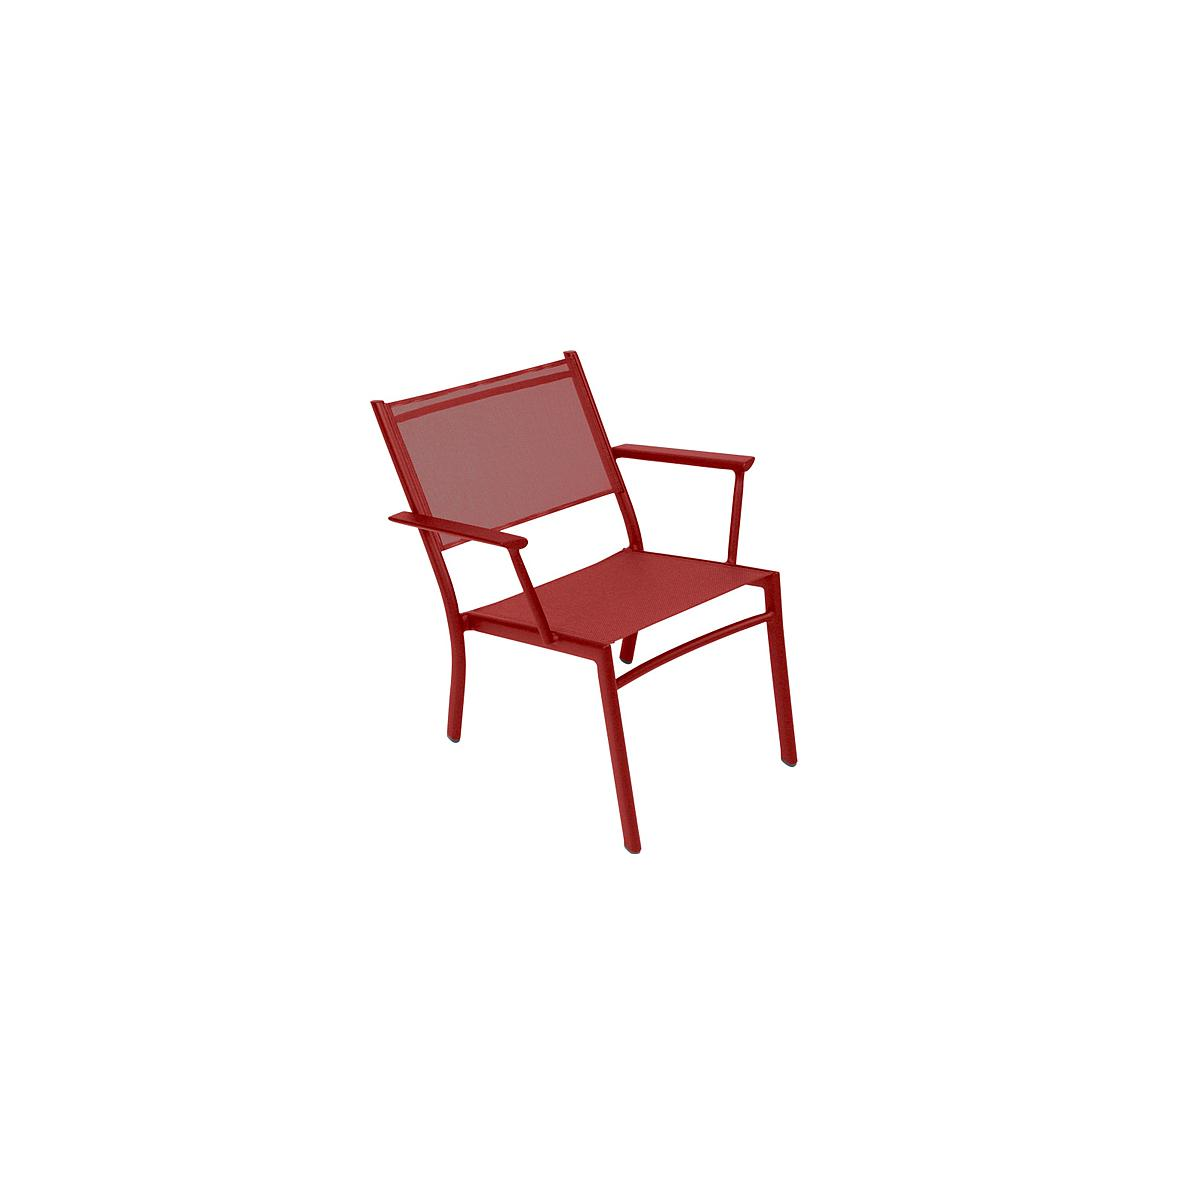 COSTA by Fermob Fauteuil bas piment